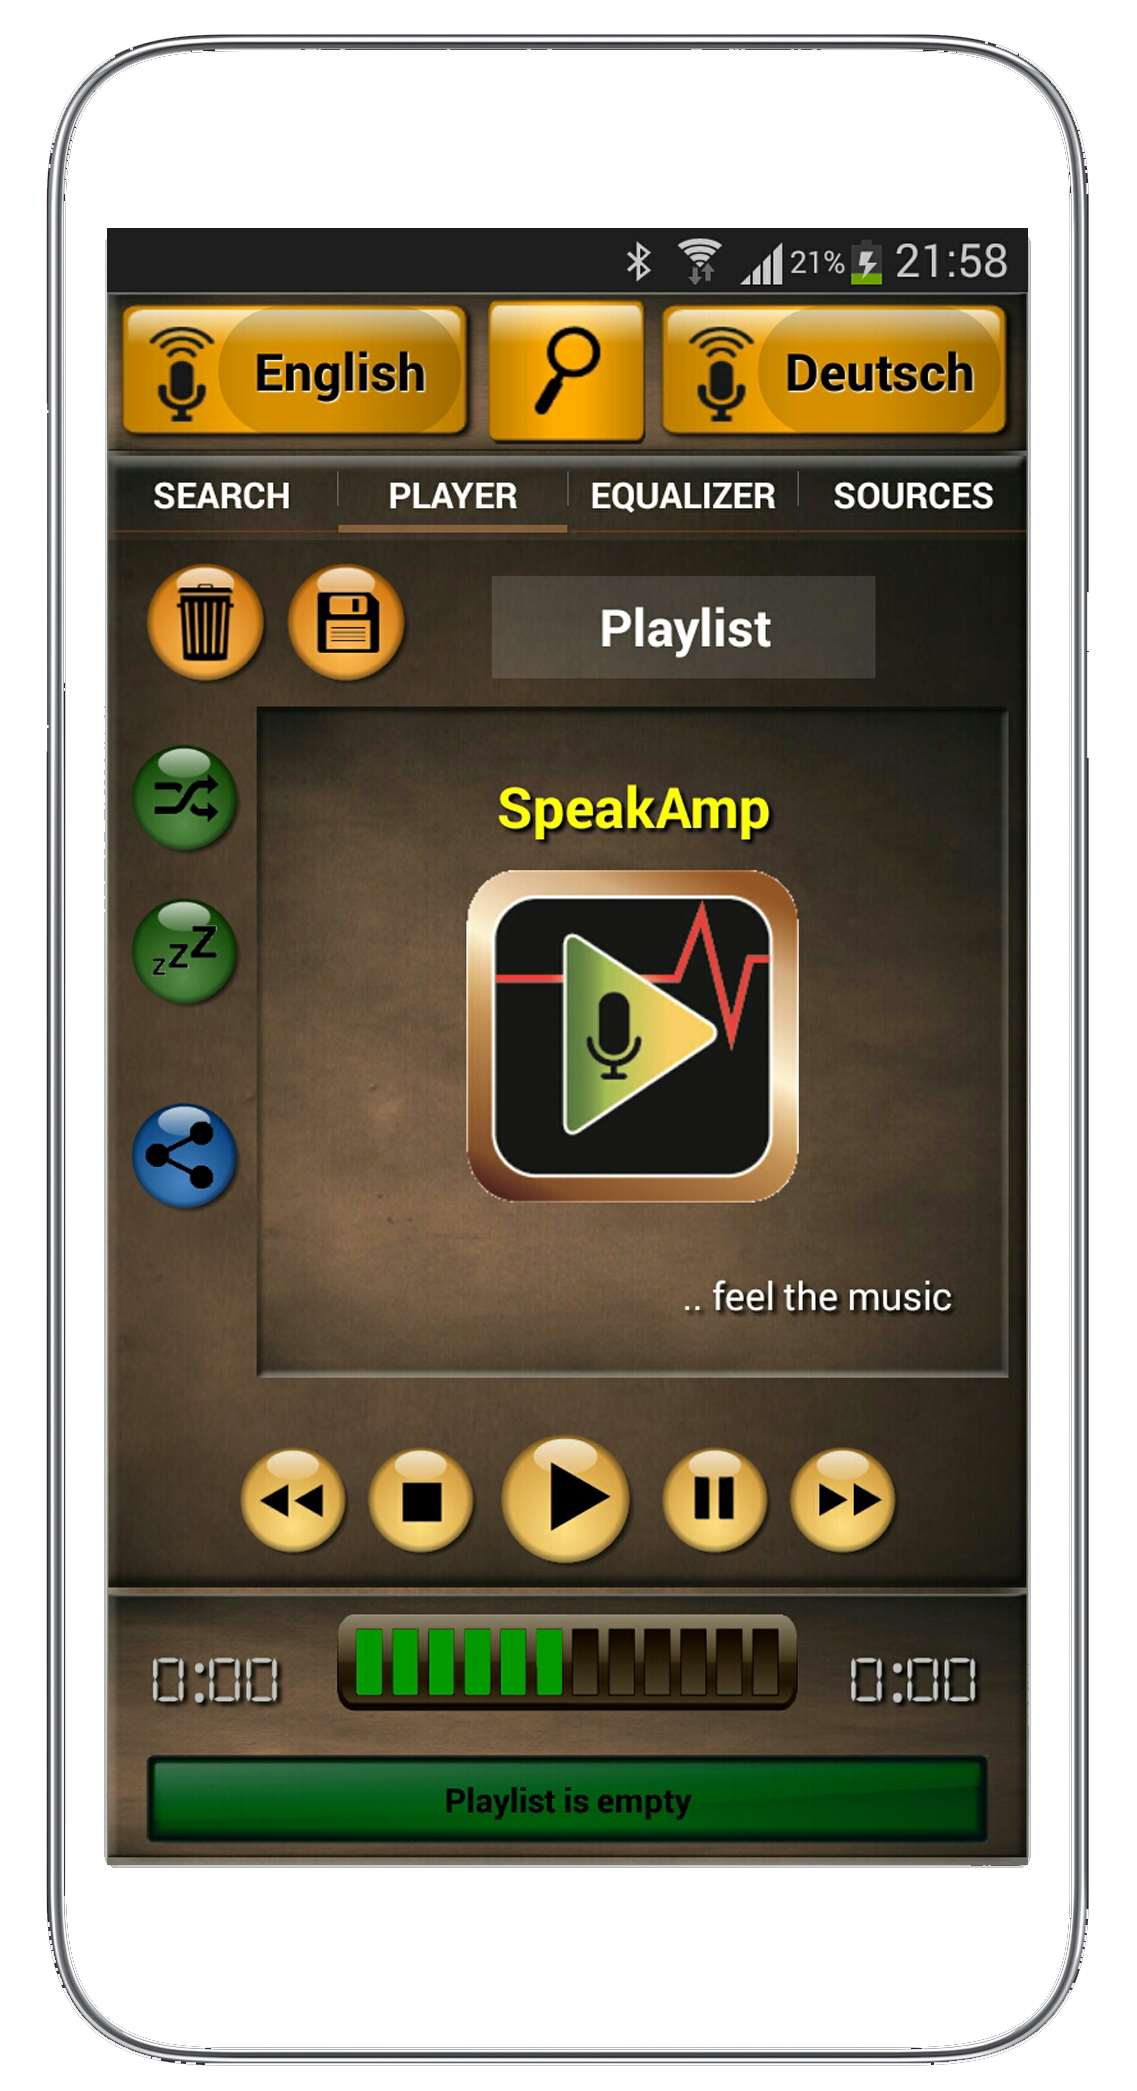 speakamp start